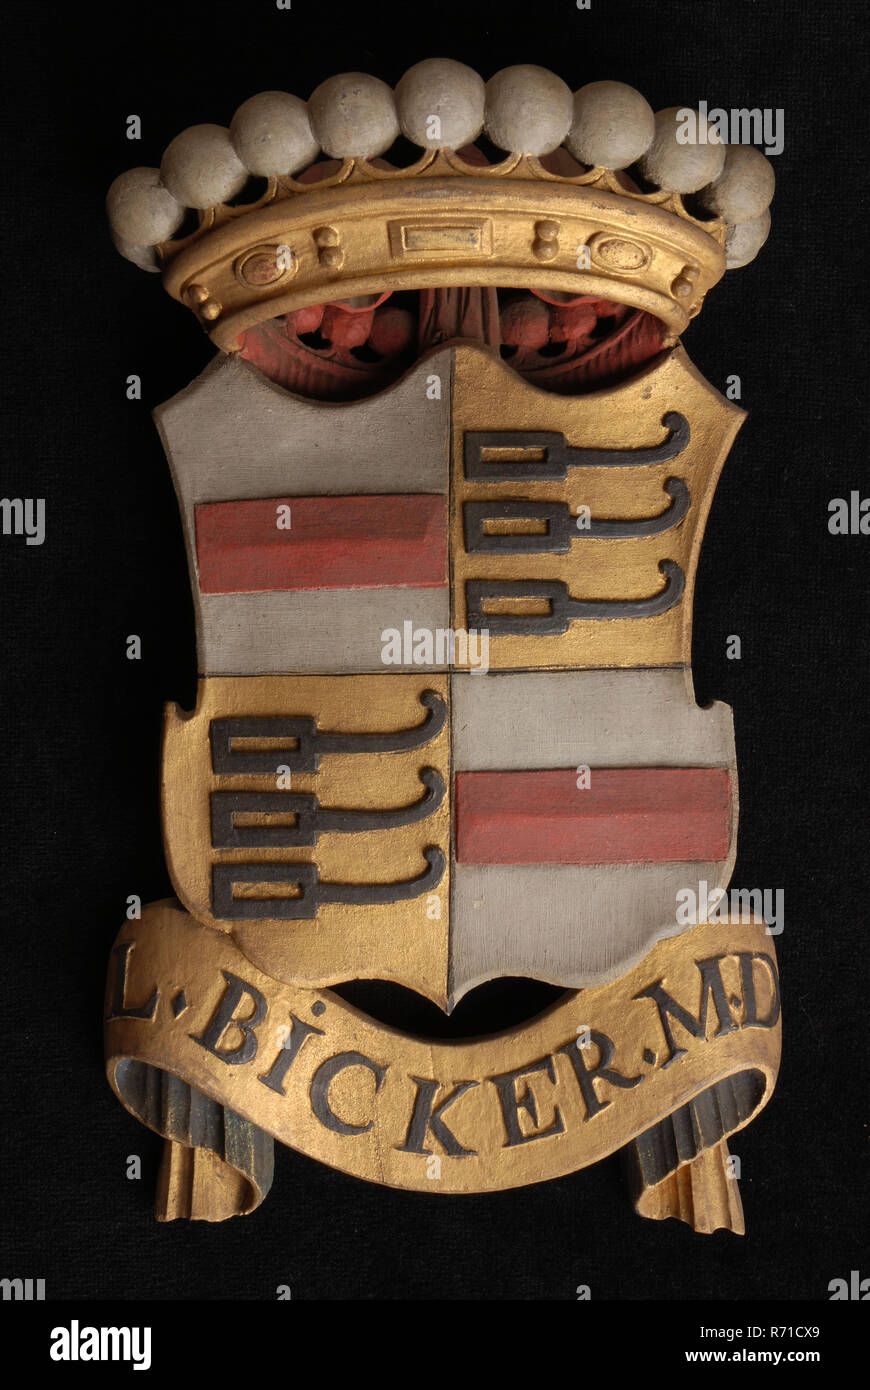 Carved wooden crowned coat of arms including the name l. bicker. m.d